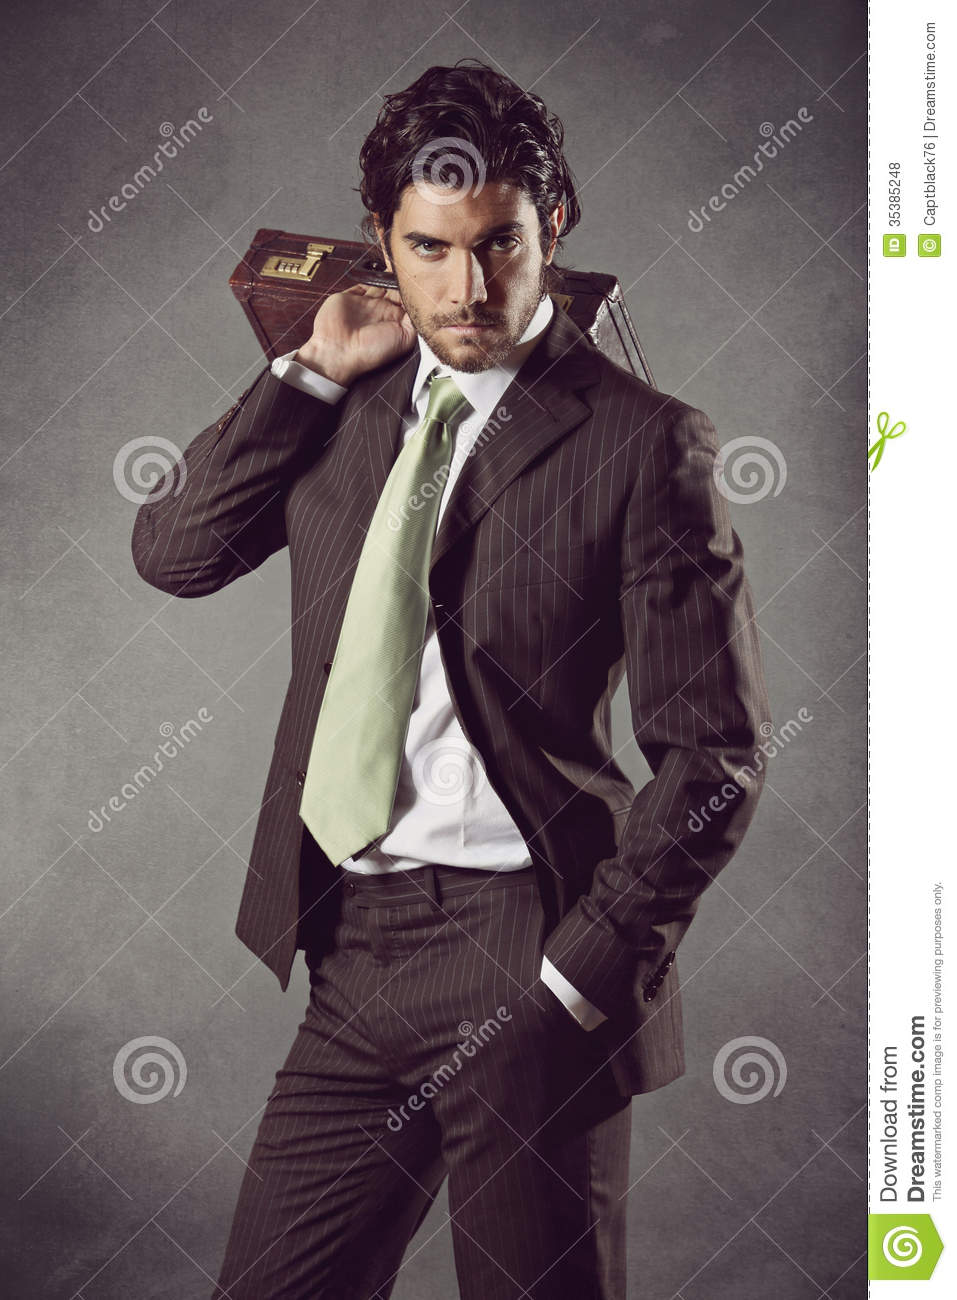 Fashion Male Model In Business Suit Royalty Free Stock